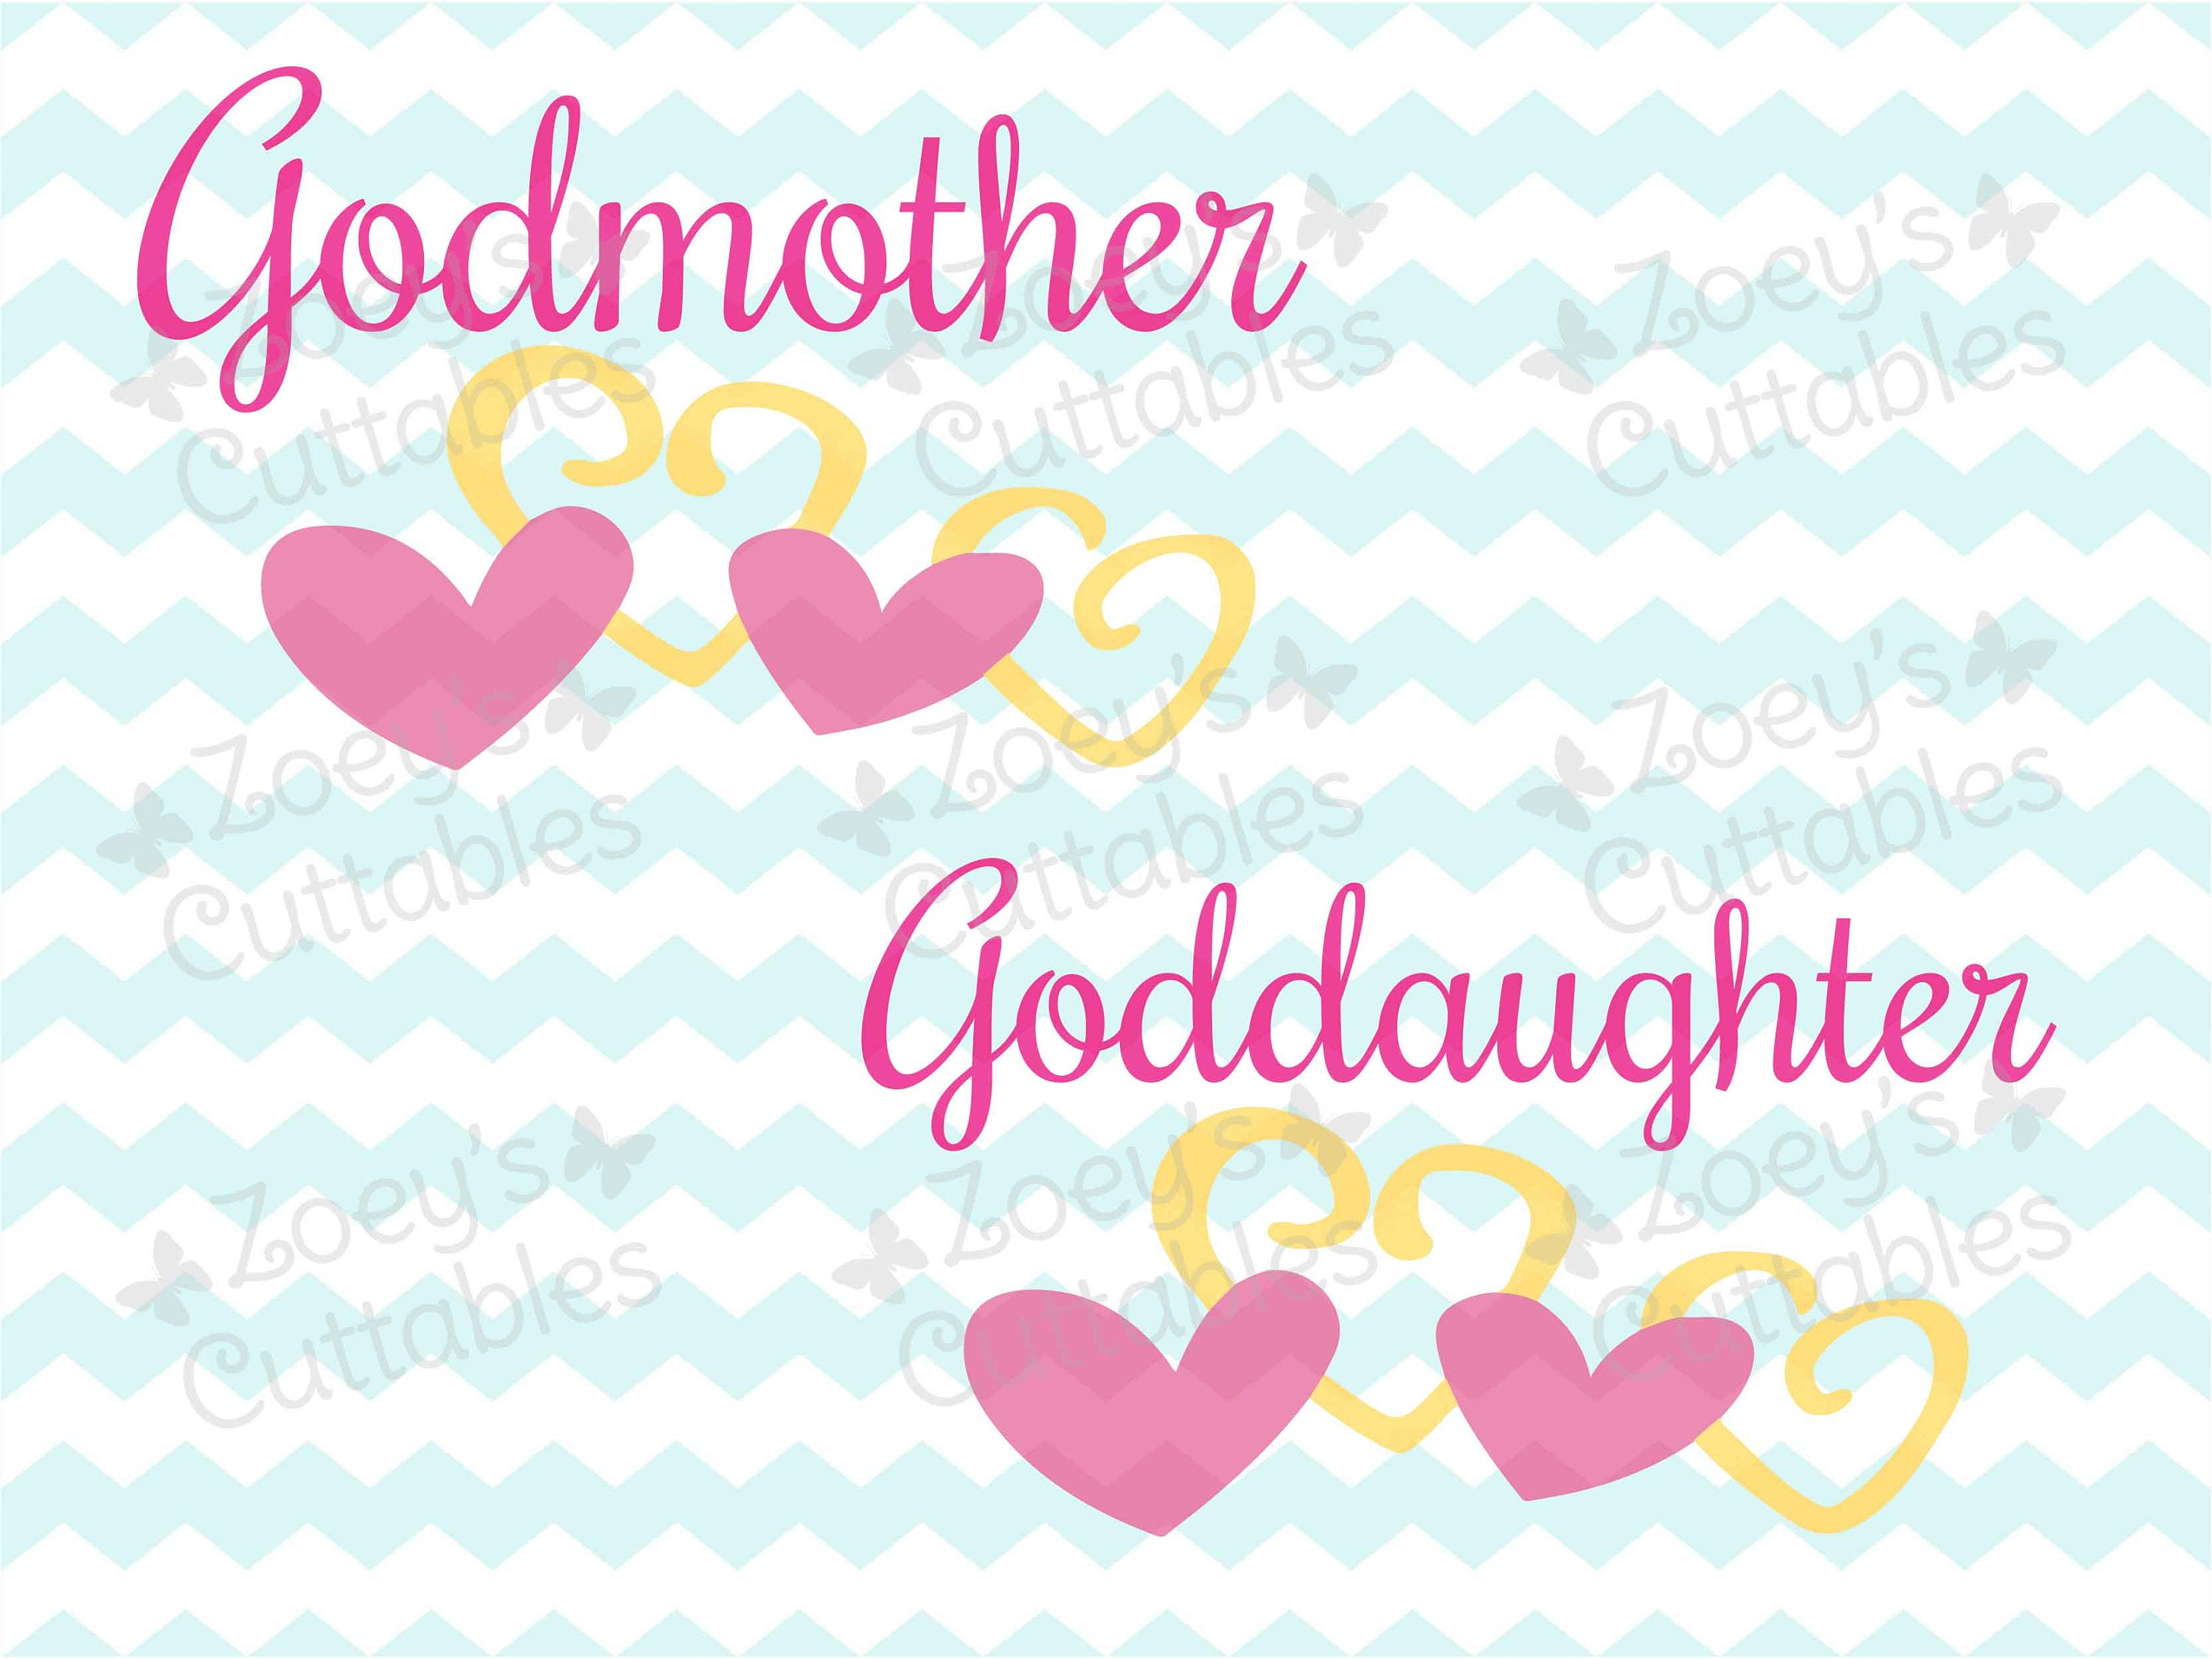 Goddaughter SVG Godmother SVG Goddaughter Godmother SVG | Etsy